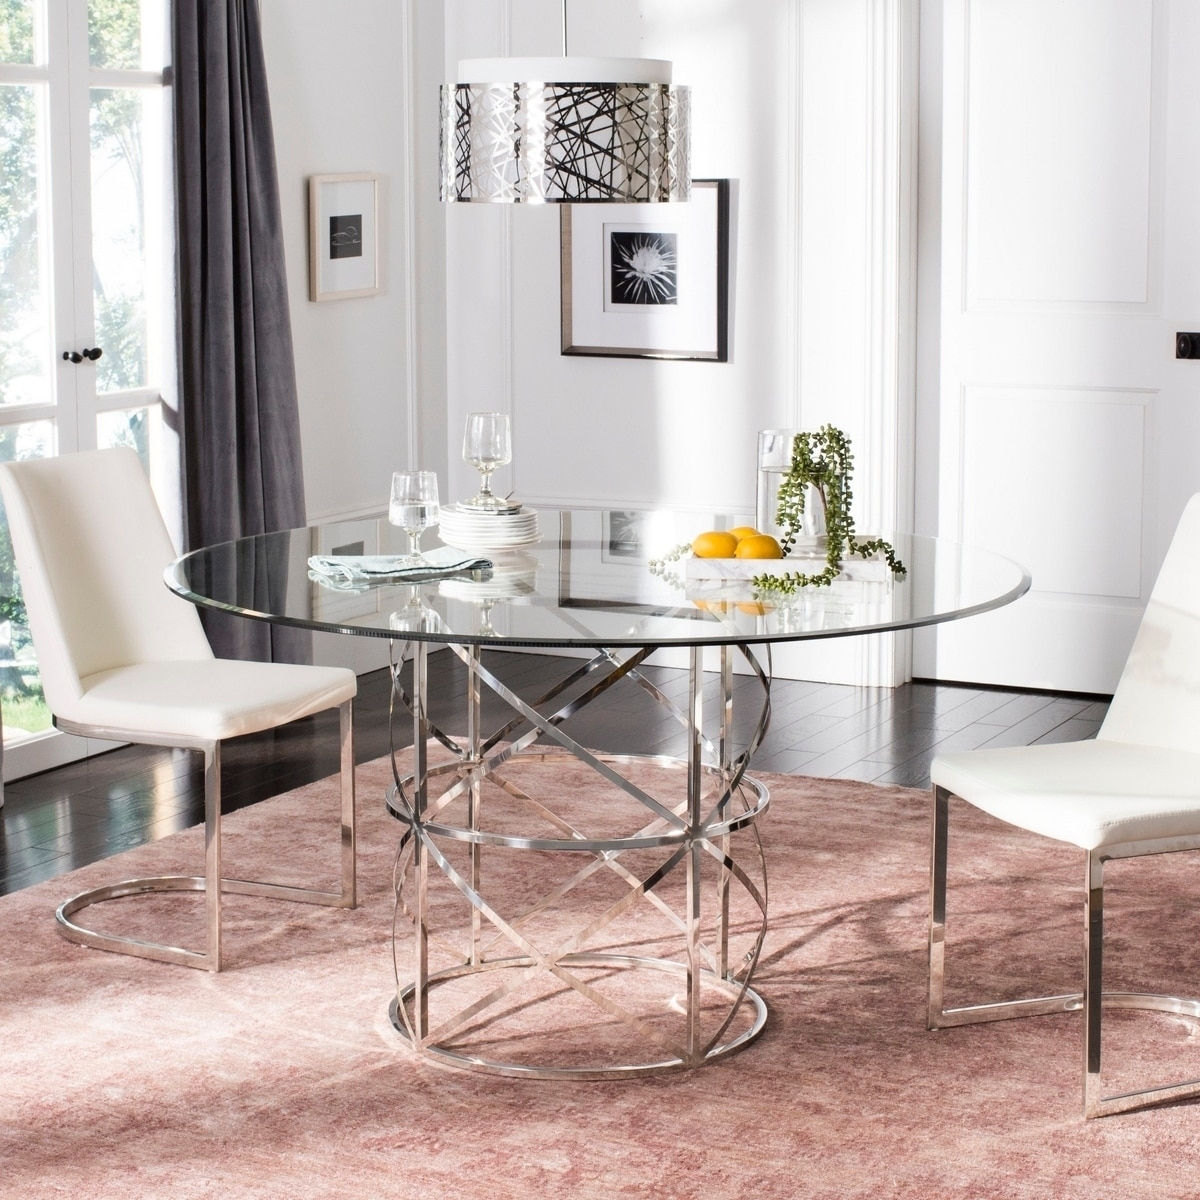 Round Glass Top Dining Table Safavieh Couture Ren Chrome Round Glass Top Dining Table Chrome Polished Stainless Steel 54